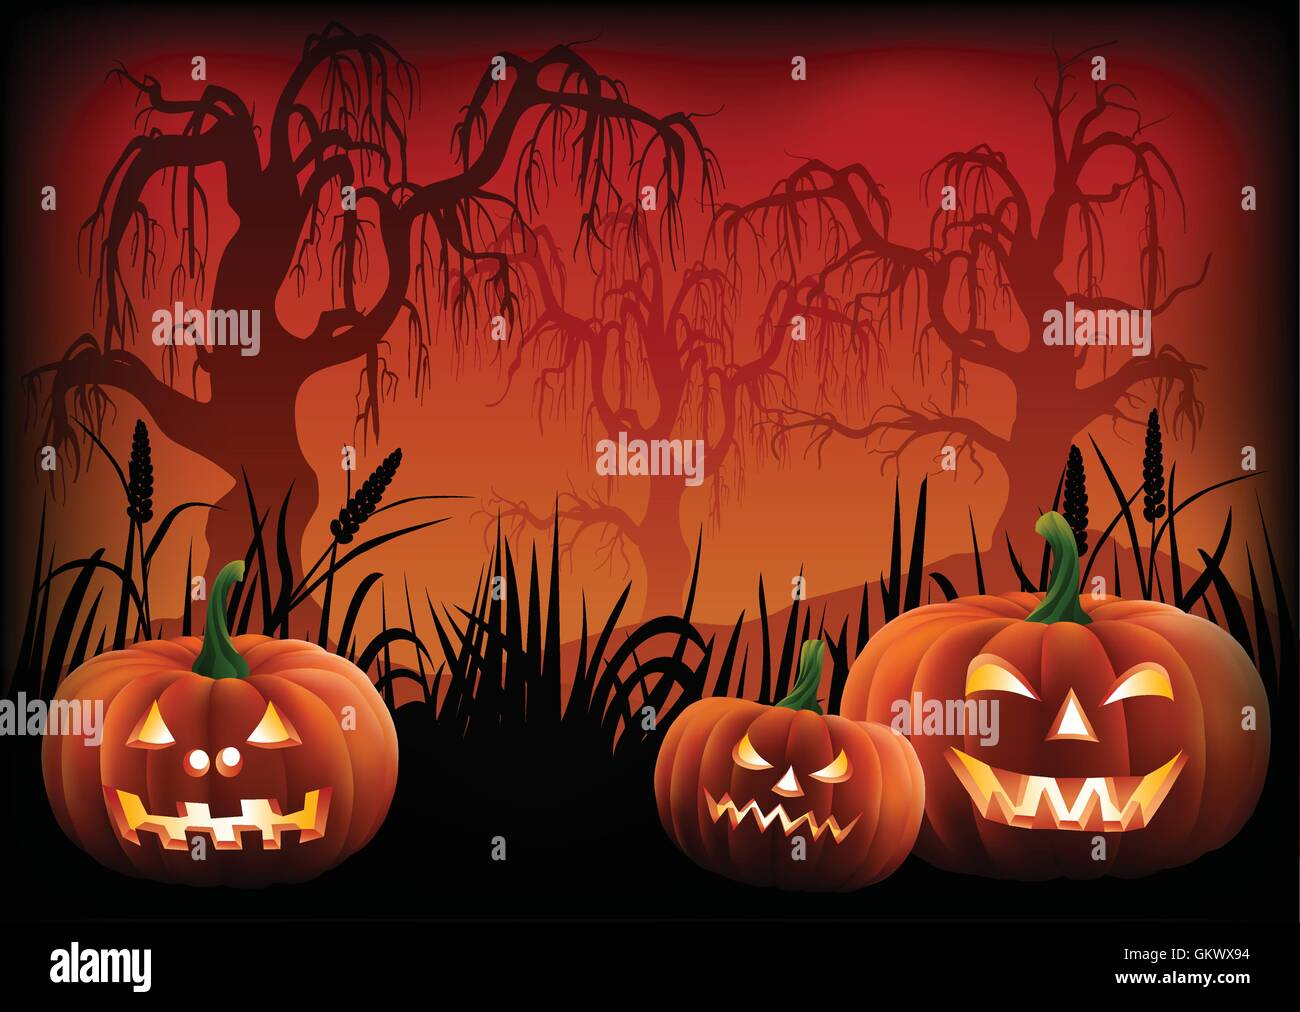 Carved pumpkins at the footer of a Halloween background. - Stock Vector